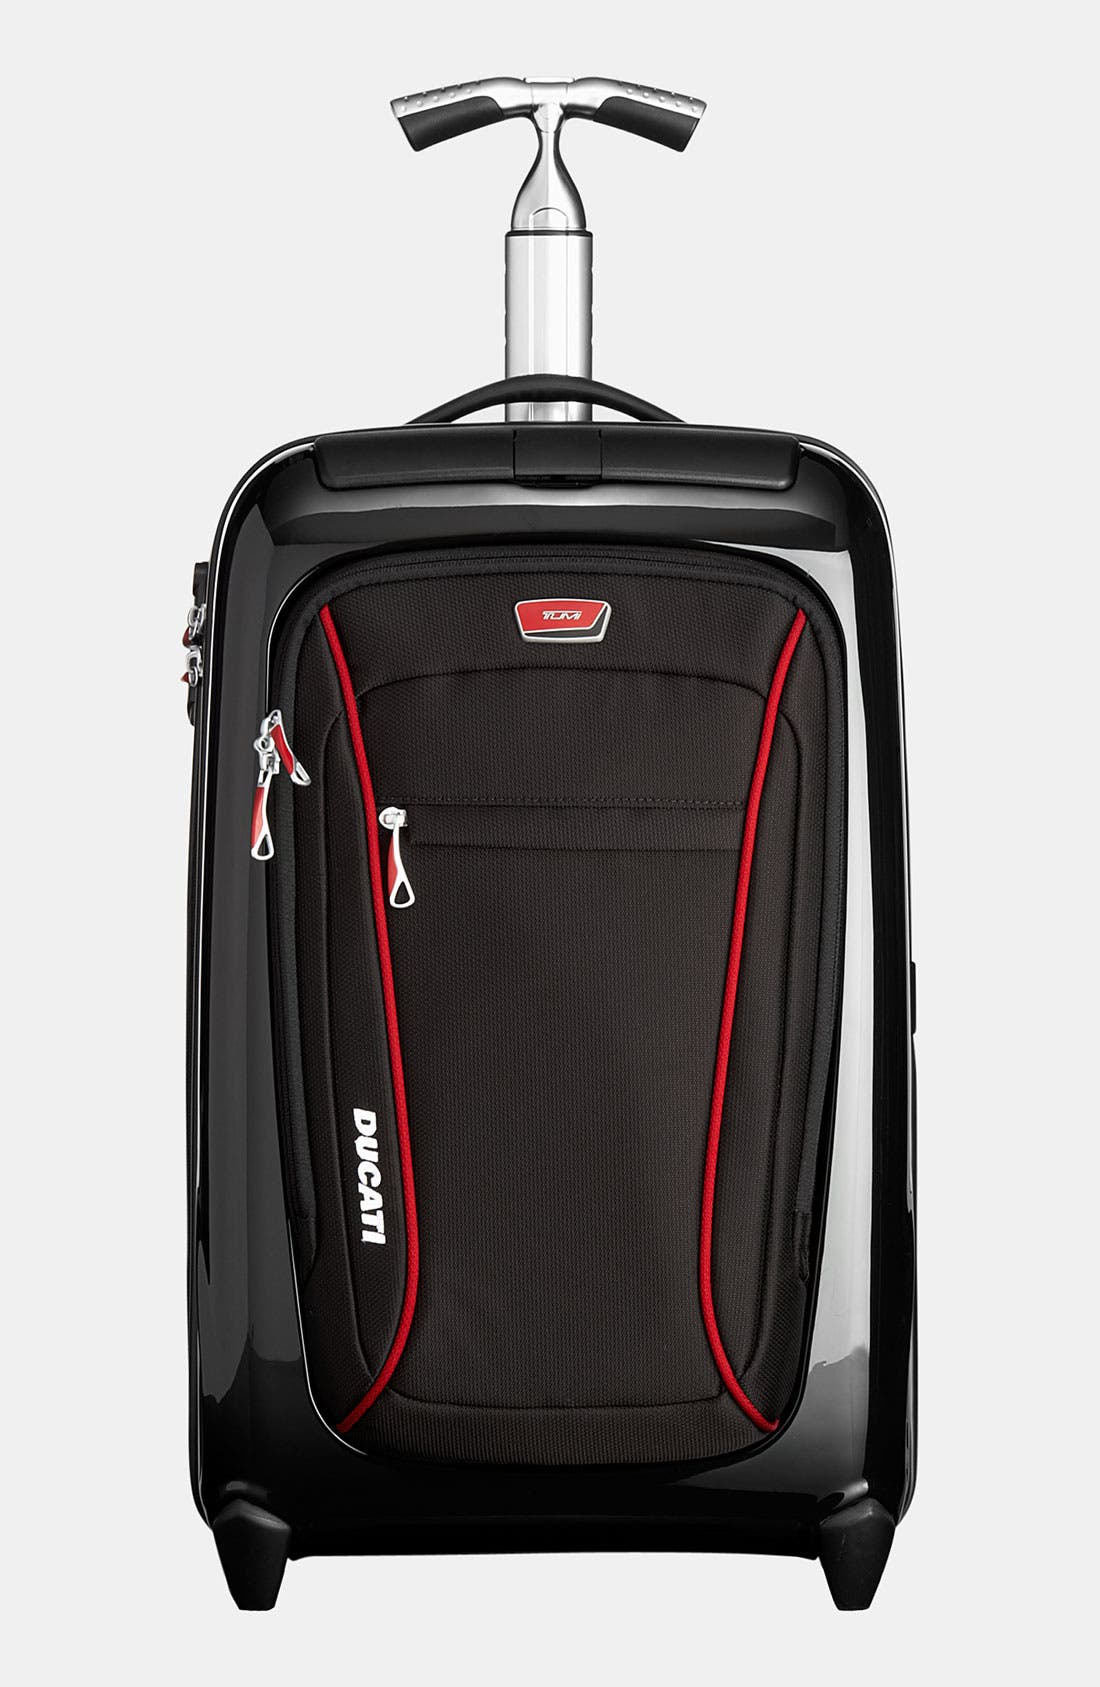 Alternate Image 1 Selected - Tumi 'Ducati - Evoluzione' International Carry-On